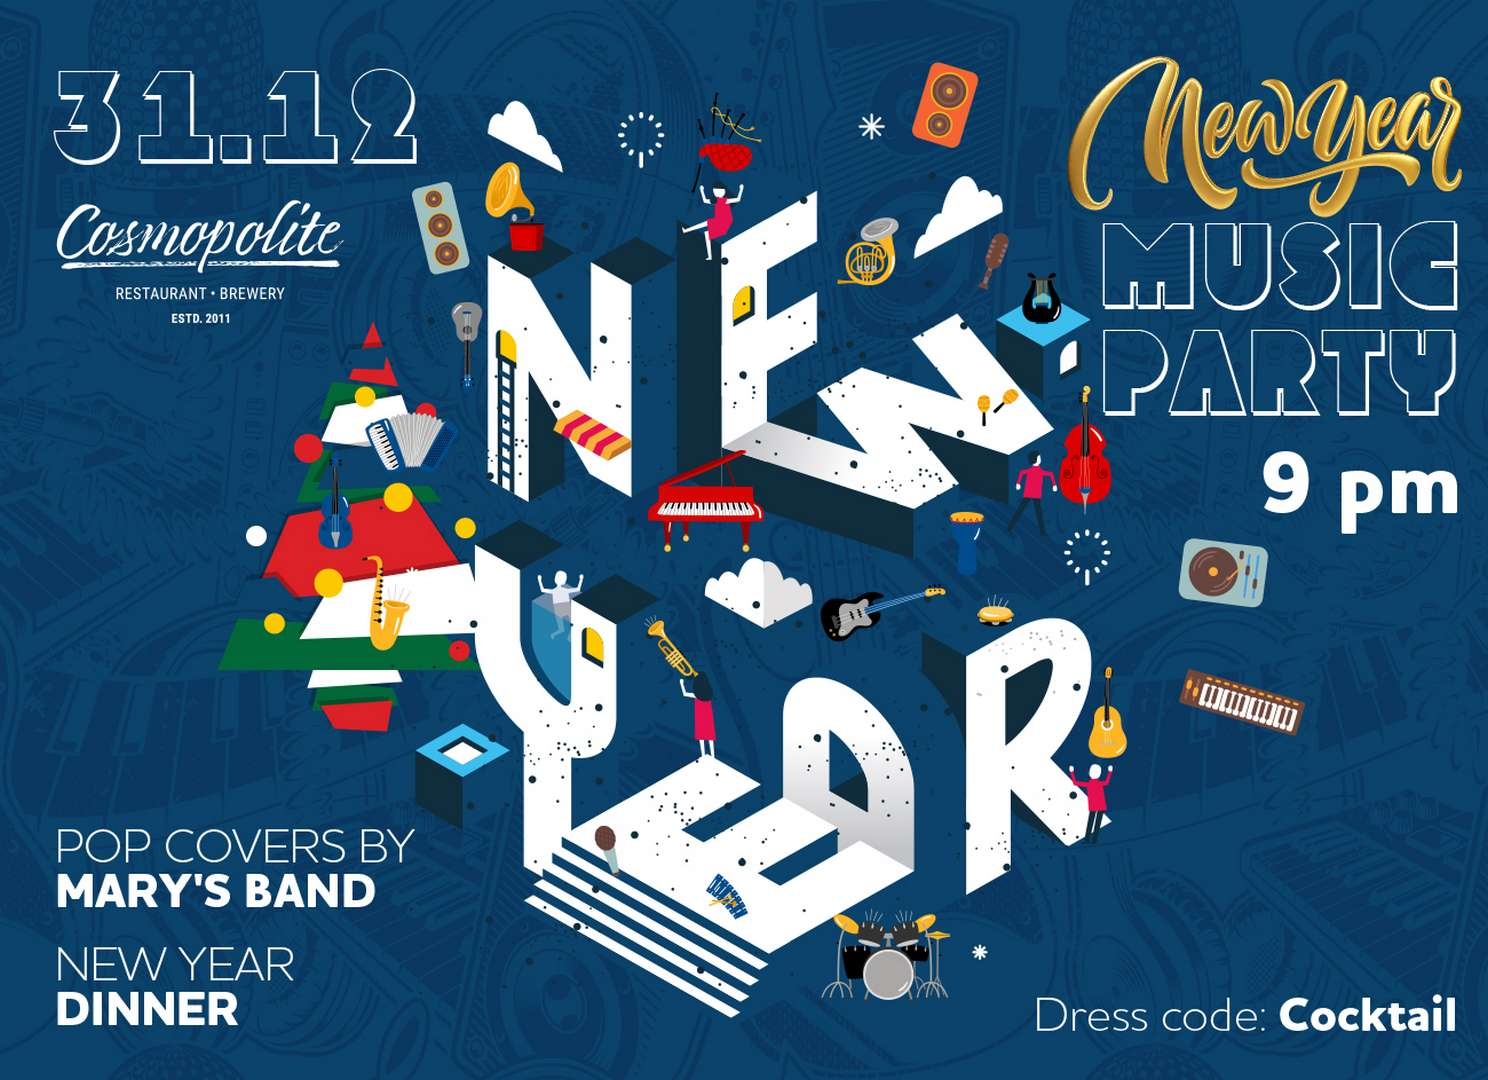 New Year Music Party 2021: Special festive offer for guests of Mercure hotel!